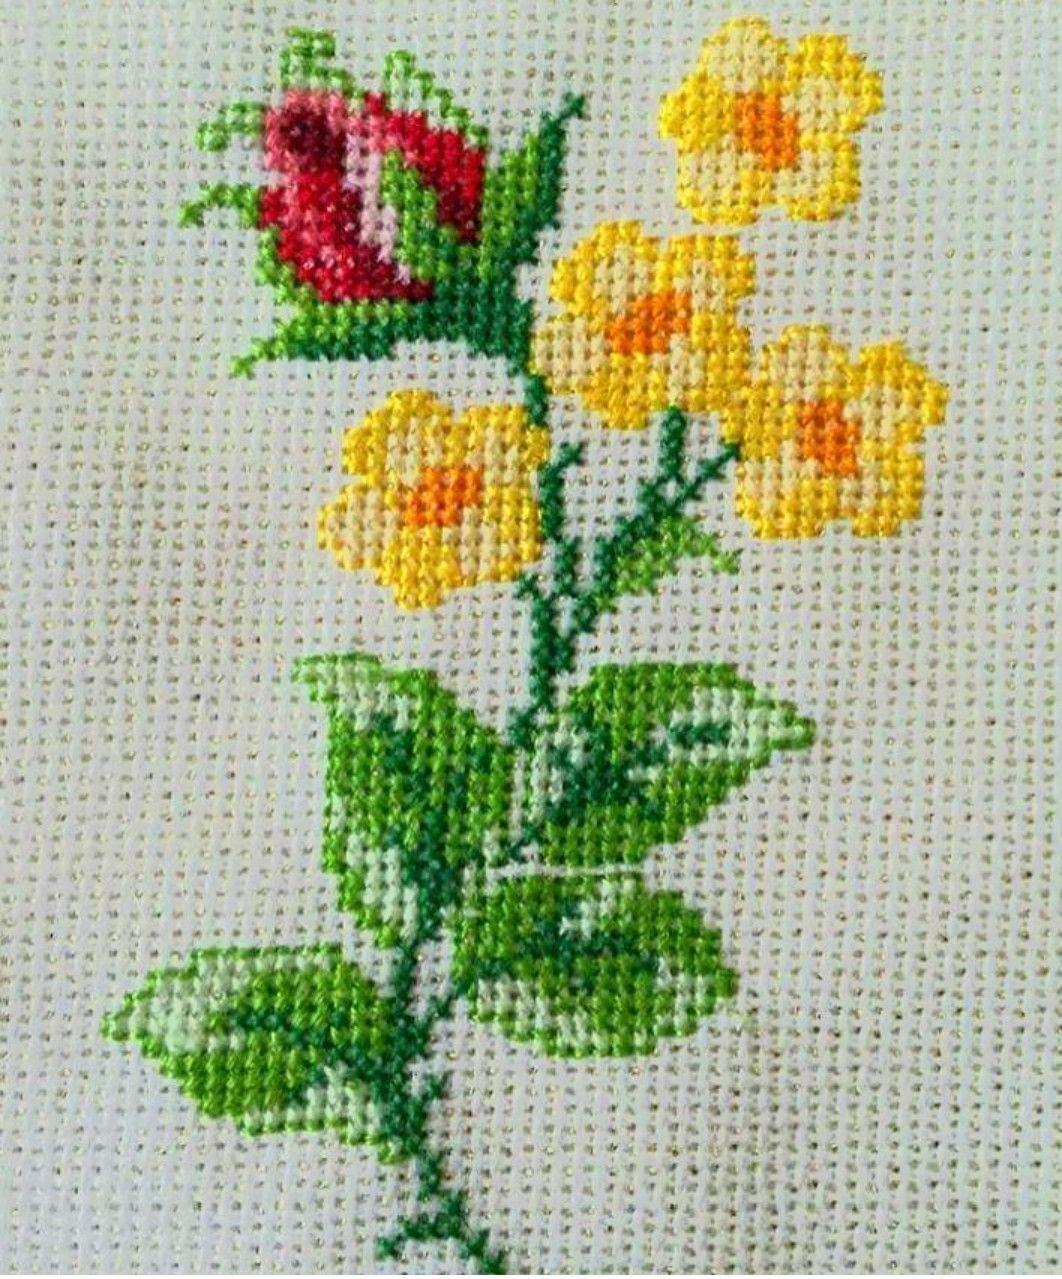 Pin by aniko on aniko pinterest cross stitch stitch and craft